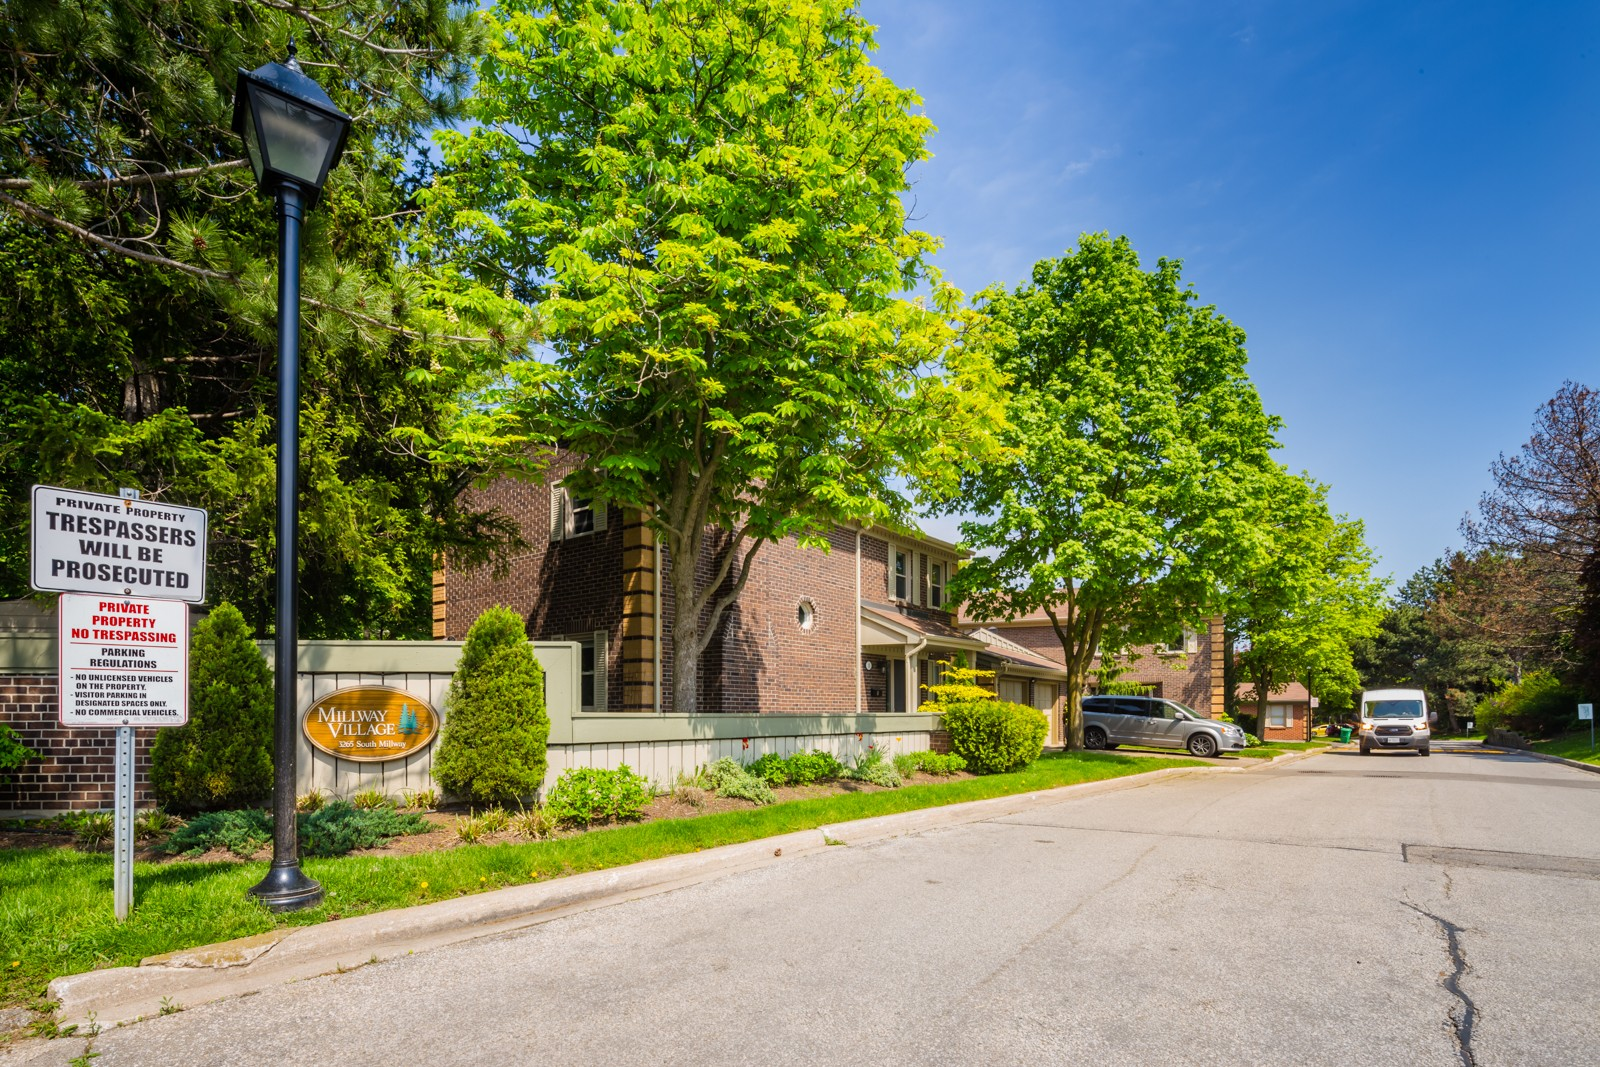 3265 South Millway Townhouses at 3265 South Millway, Mississauga 0